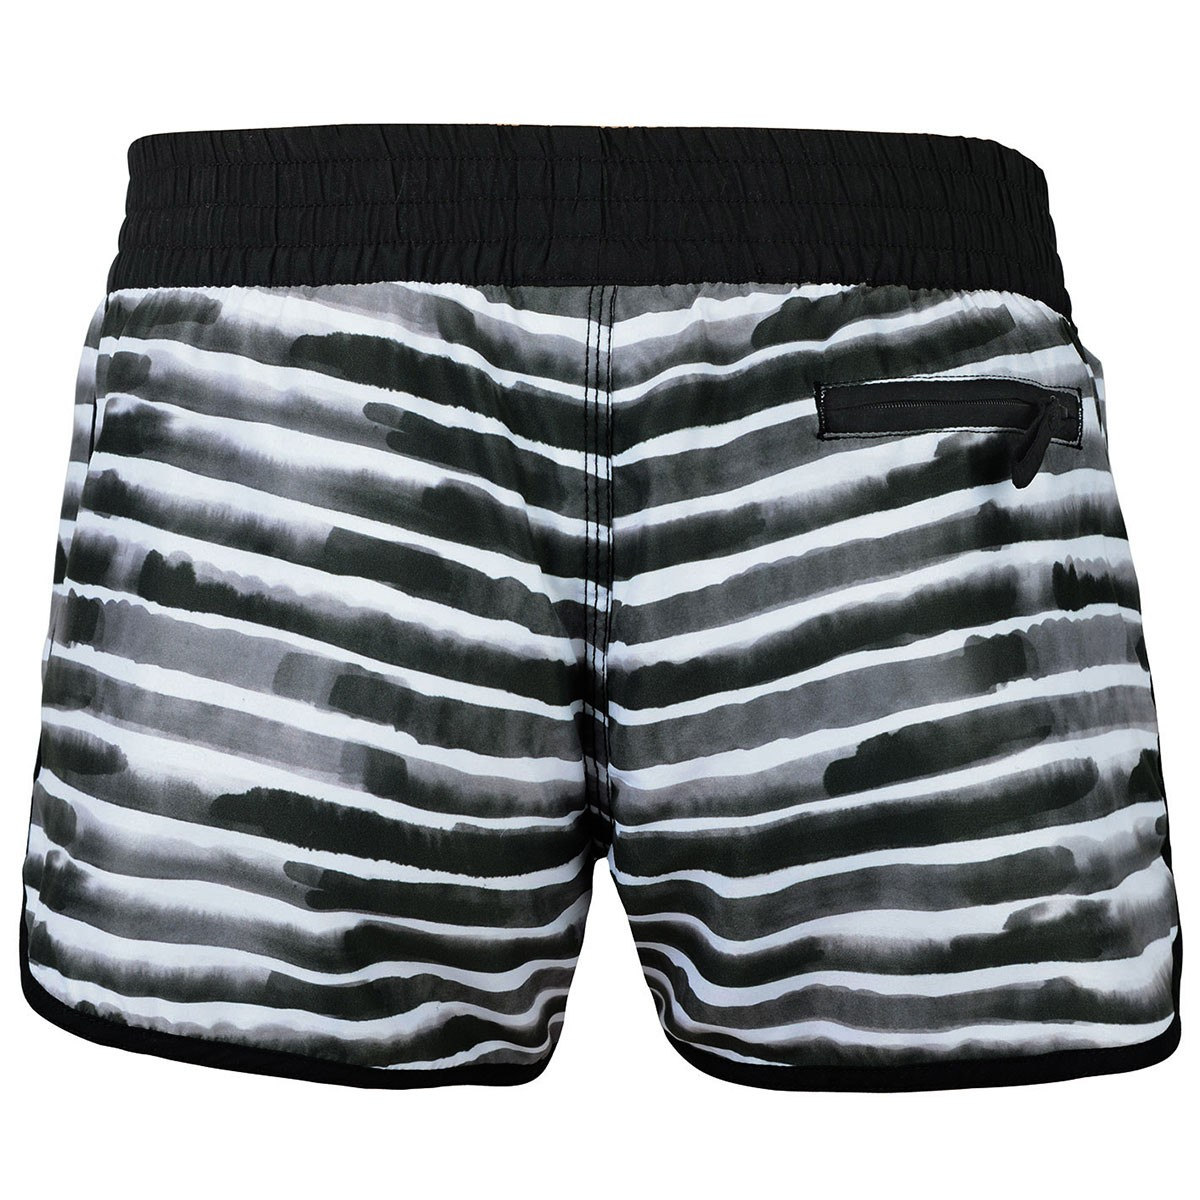 0fb3d2ee14 Womens Waikane Board Shorts - White. Style: UBDAW04-07WH Colour: White